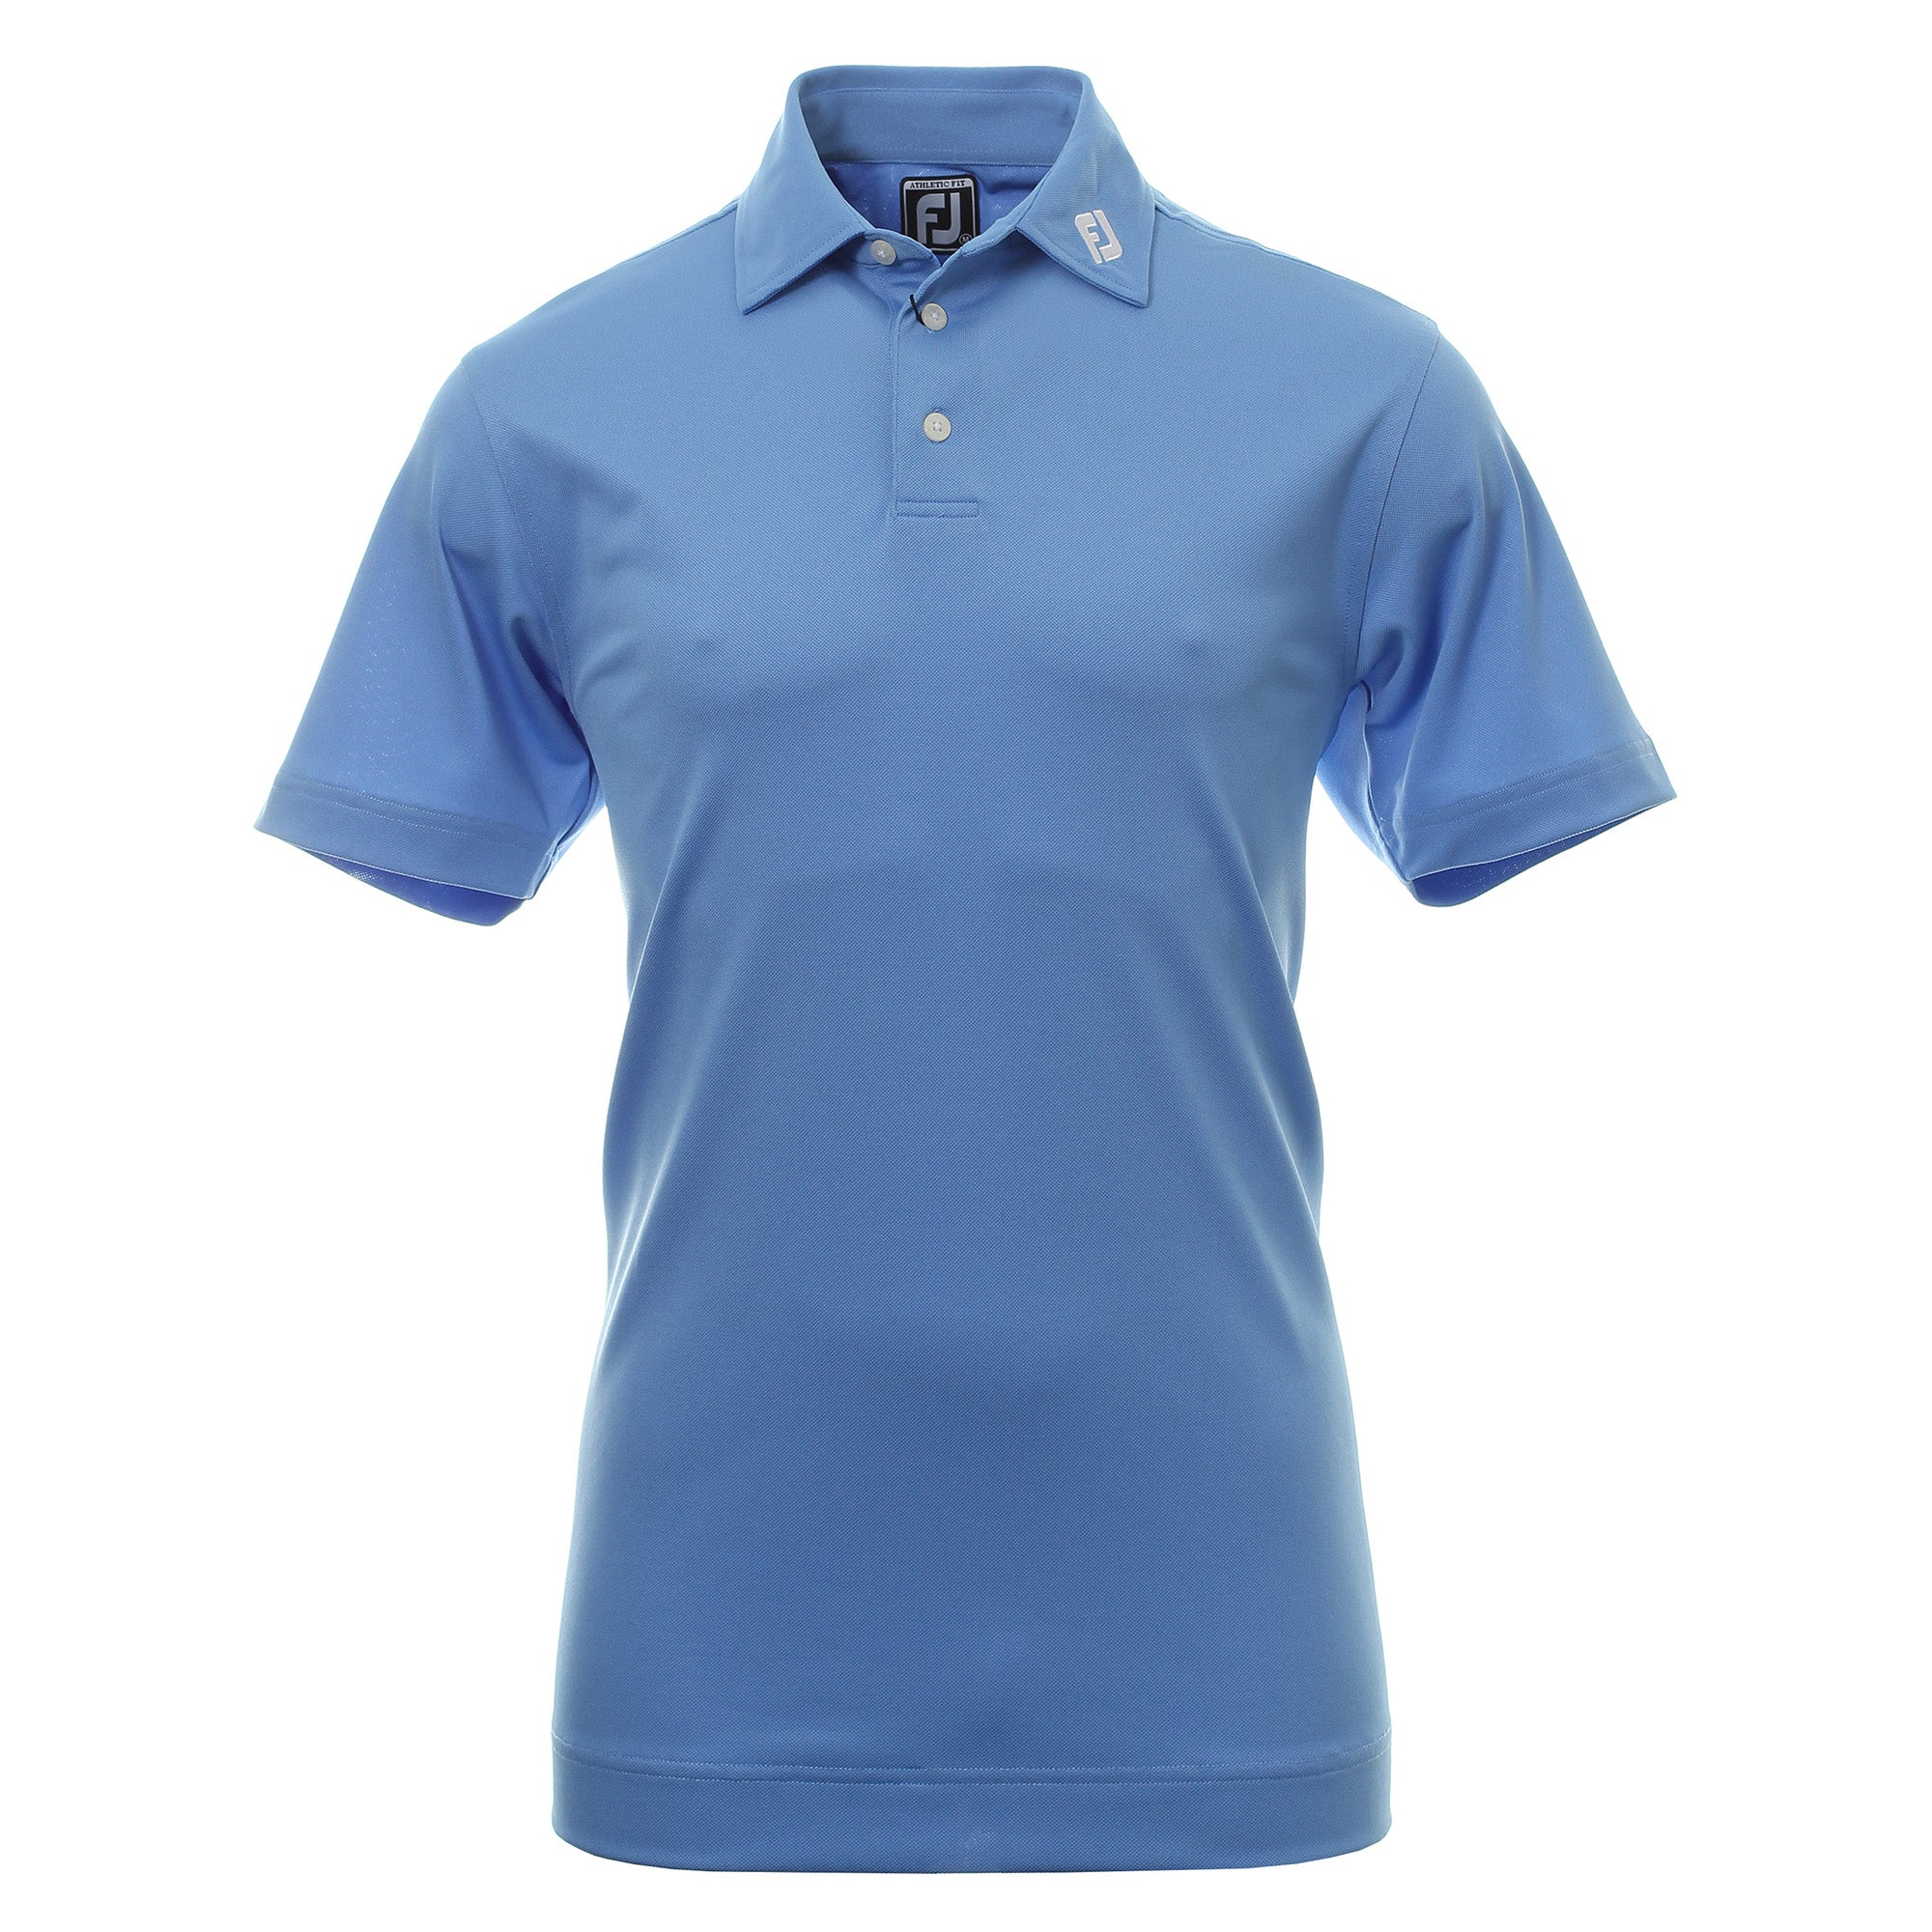 FootJoy Stretch Pique Solid Golf Shirt 91826